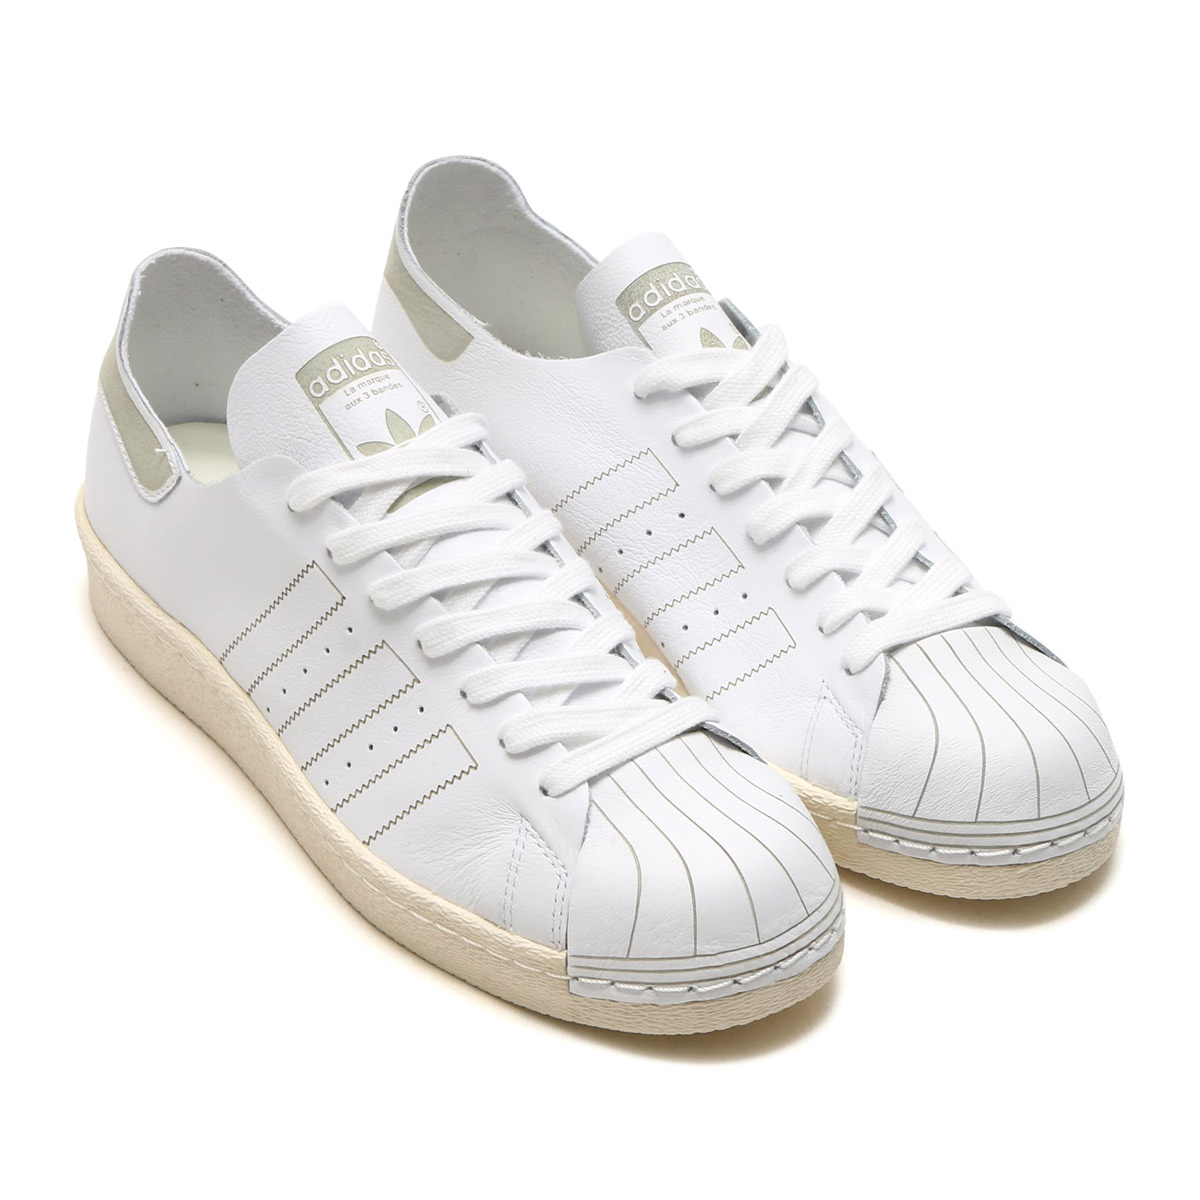 Superstar 80s suede trainers £79.99 Bullring